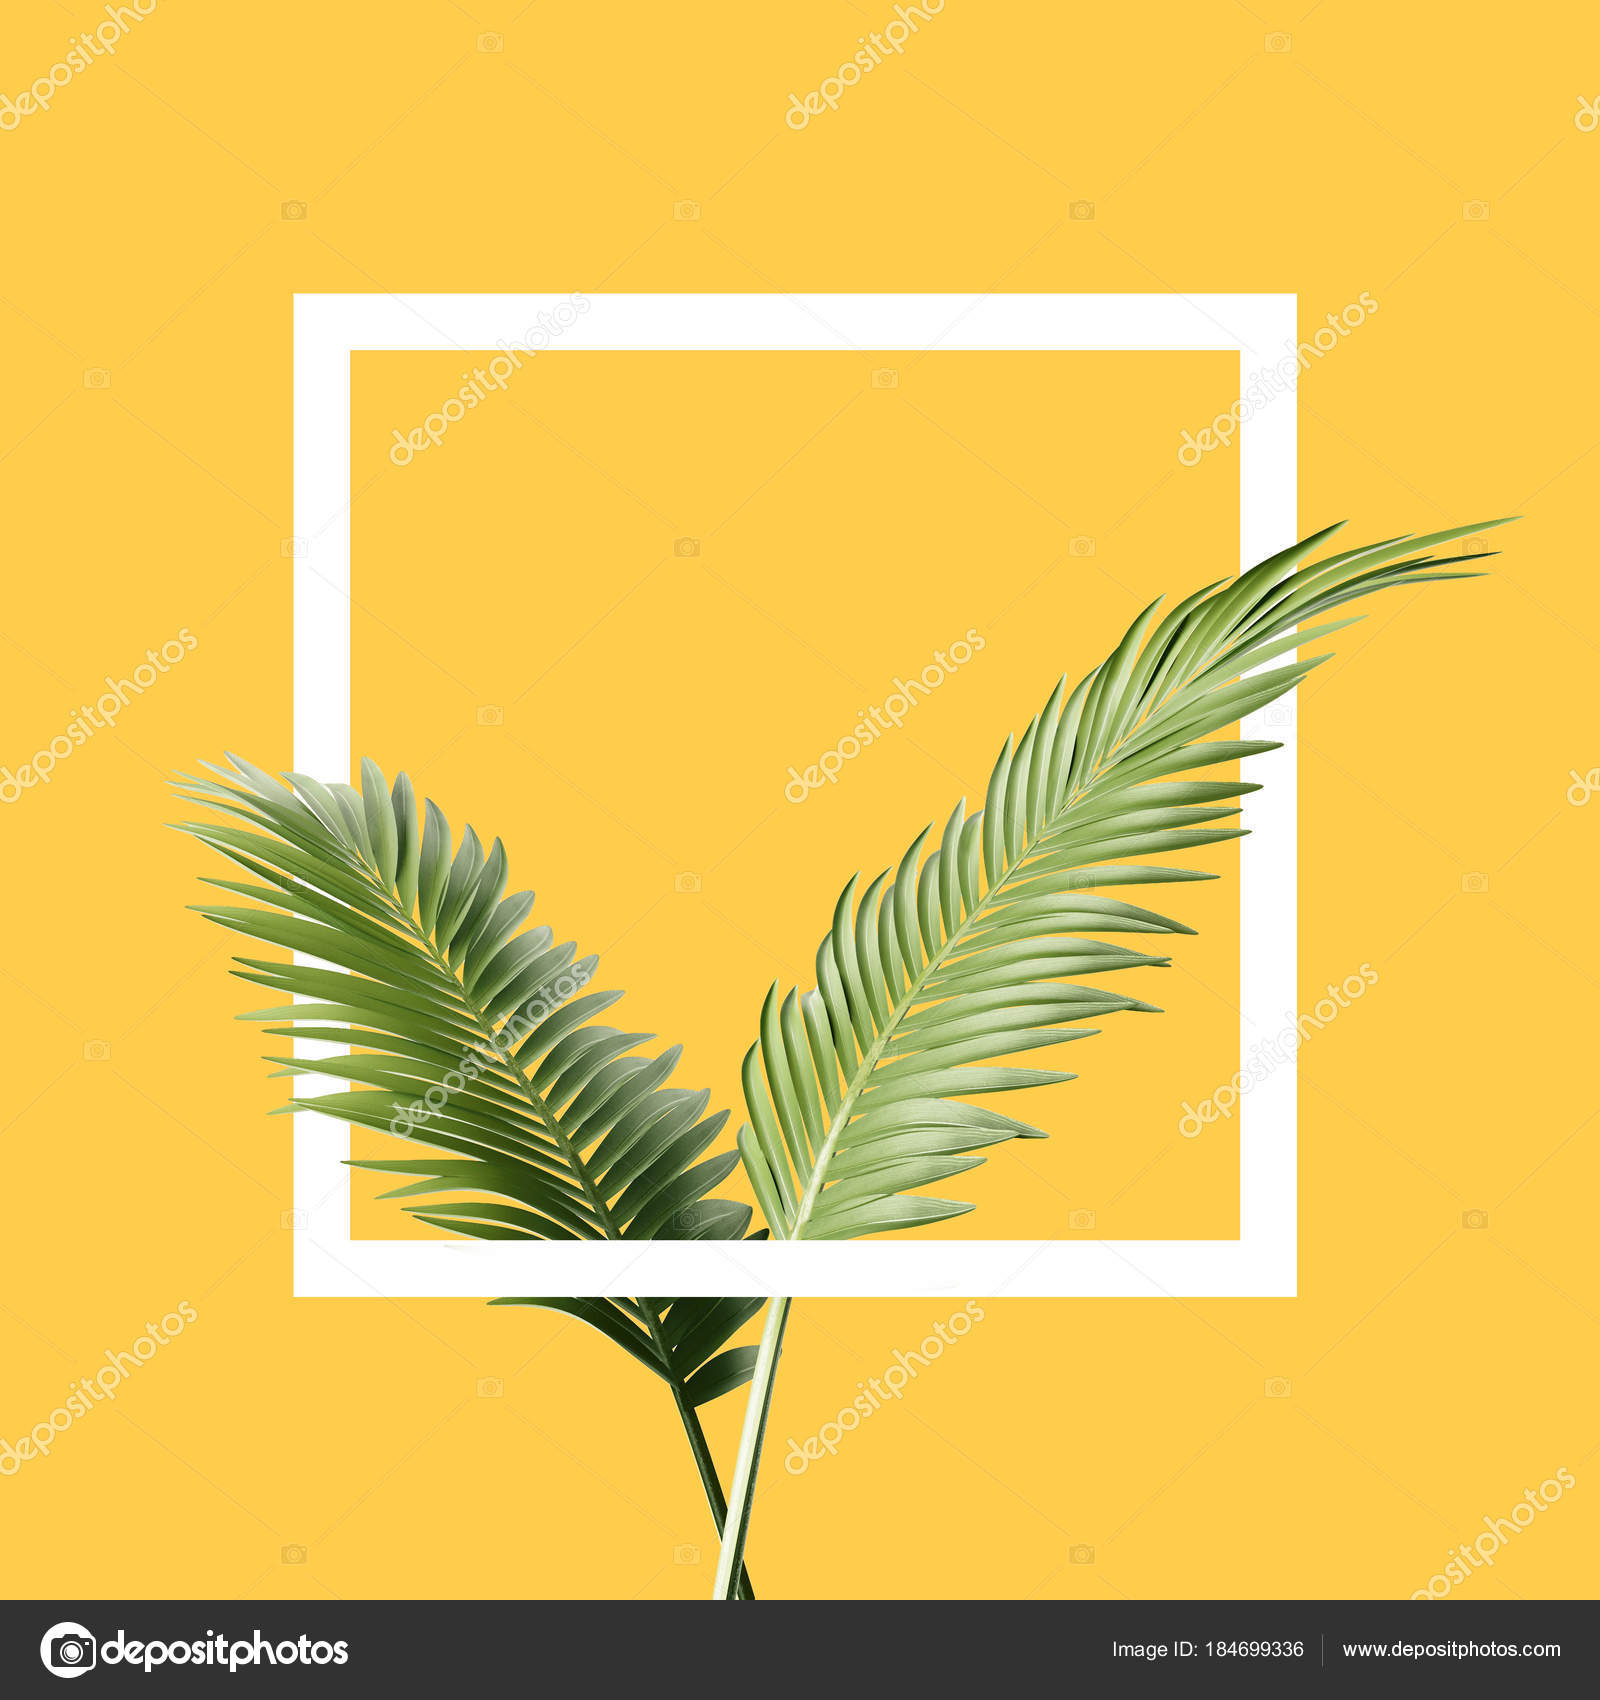 branches palm leaves square yellow background geometry concept